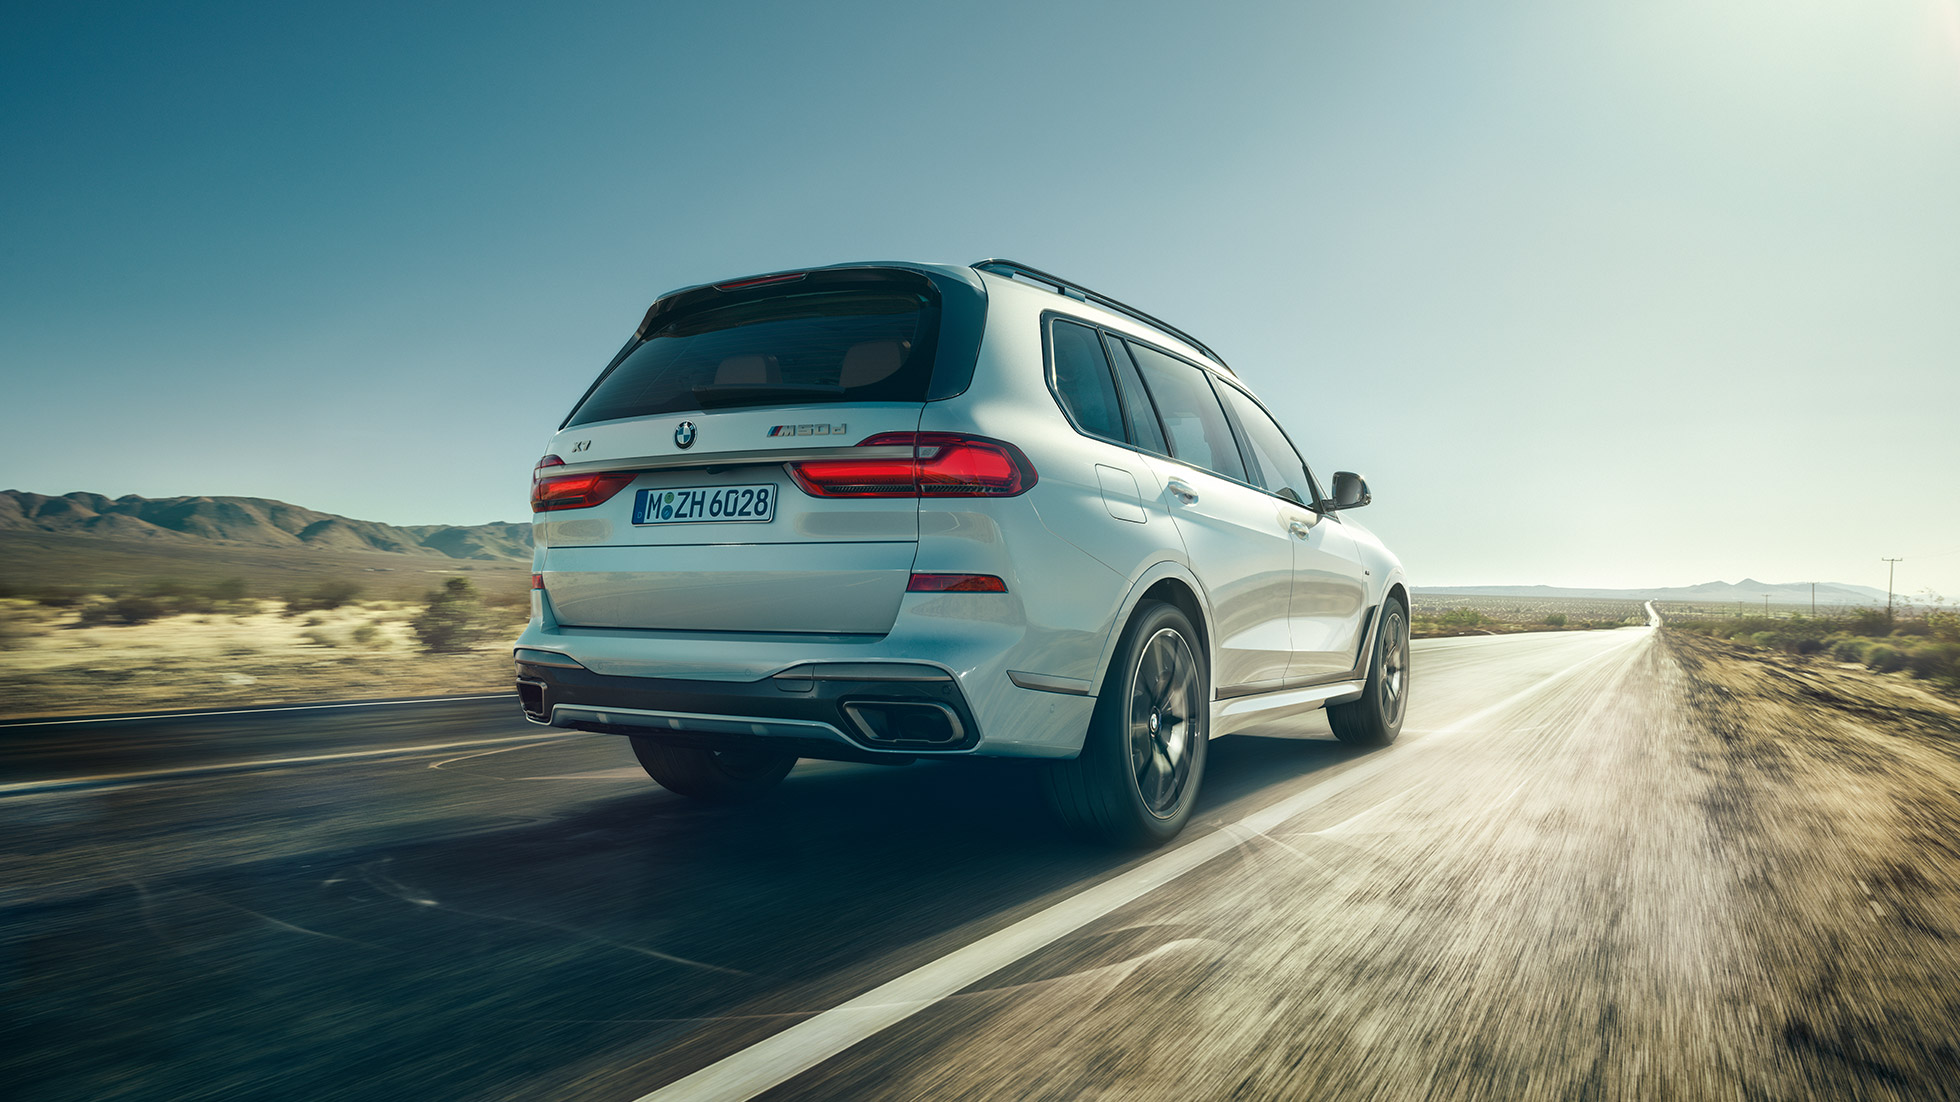 BMW X7 M50i: rear shot of the driving, white BMW X7